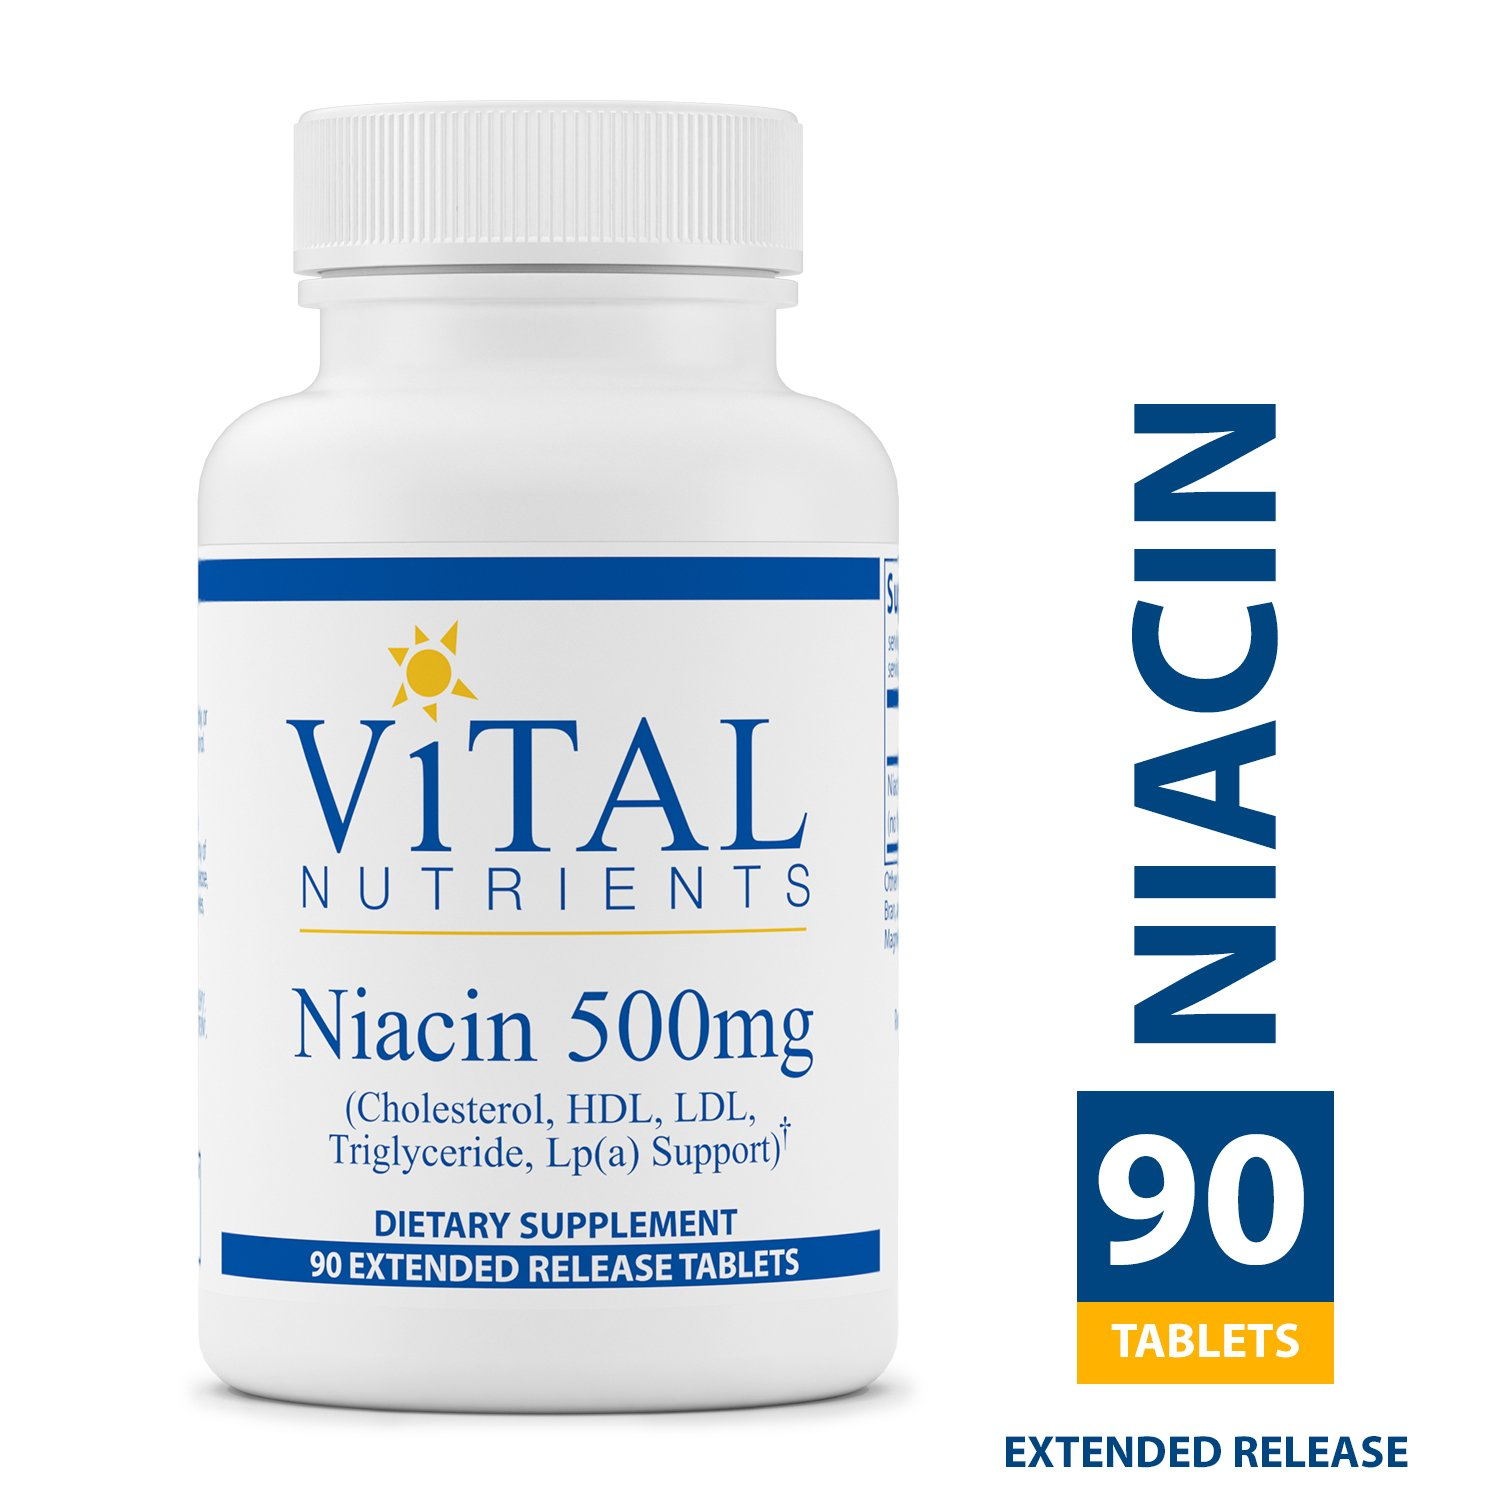 Vital Nutrients - Niacin 500 mg Extended Release - Cholesterol, HDL, LDL, Triglyceride, LP(A) Support - 90 Extended Release Tablets per Bottle